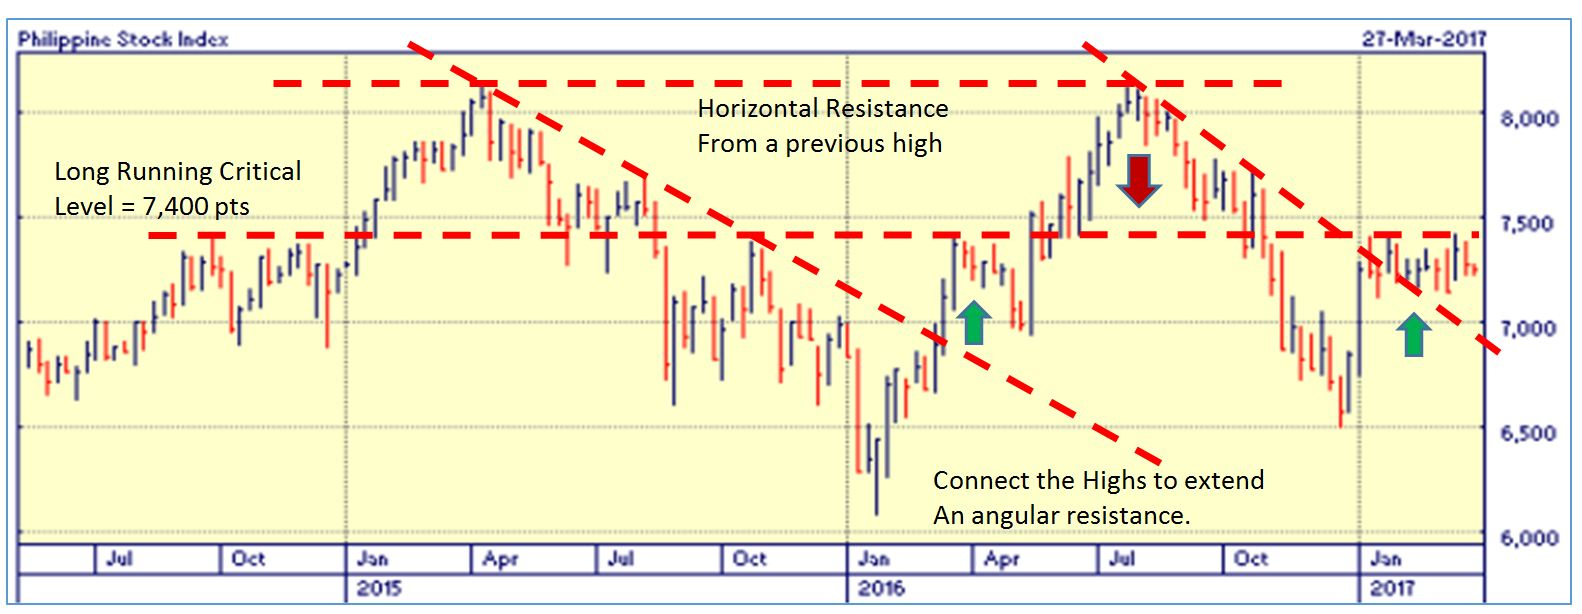 chart reading or technical analysis an important skill in stock from the illustration which is the current situation there is a long running resistance line at 7 400 which originated from 2014 and still working up until